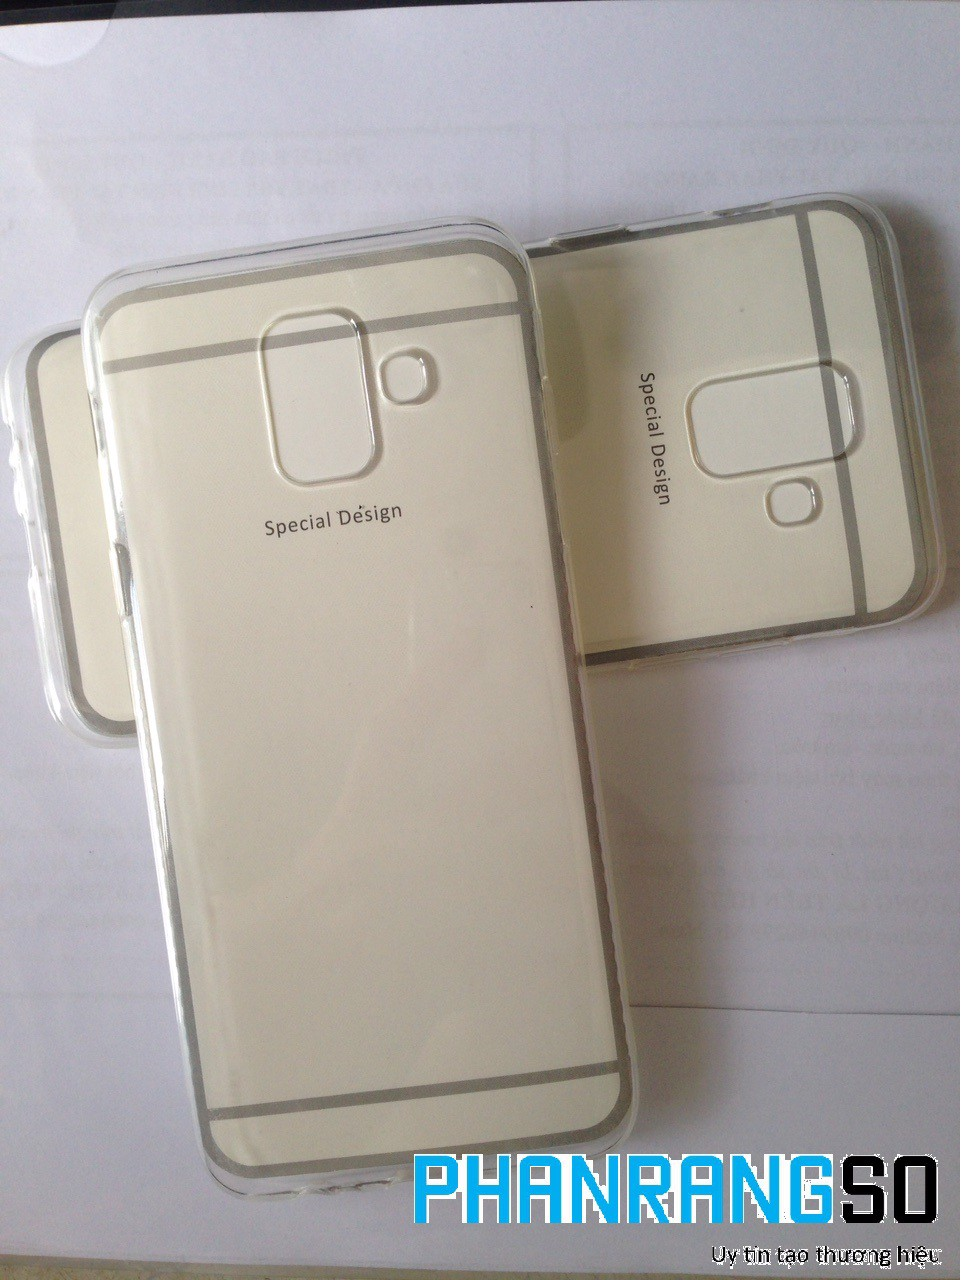 Ốp lưng dẻo trong suốt (tốt) Samsung A6 2018